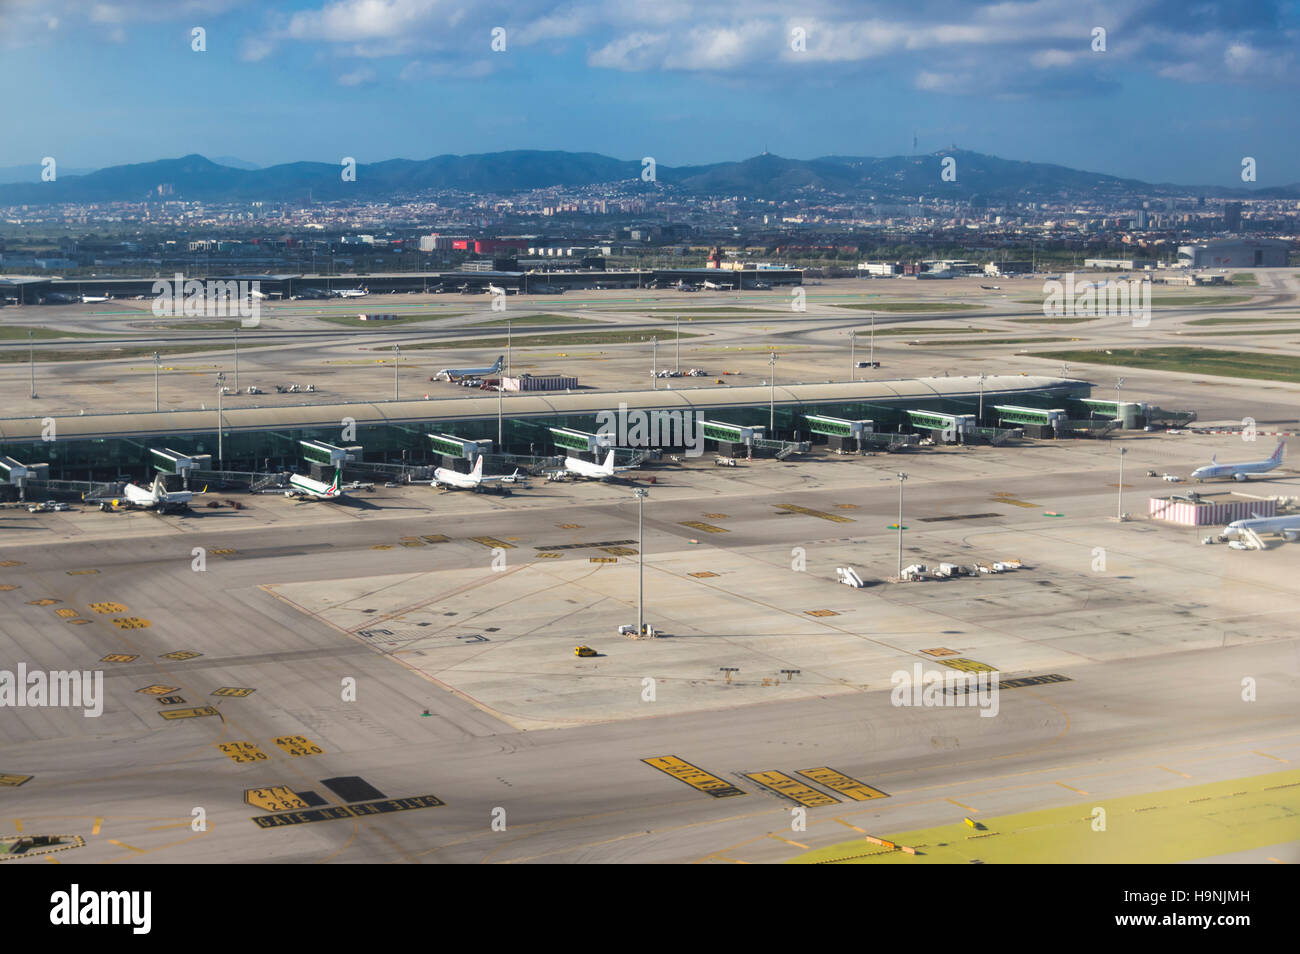 Aerial photography of Barcelona El Prat international airport with terminal T1 in the foreground. - Stock Image